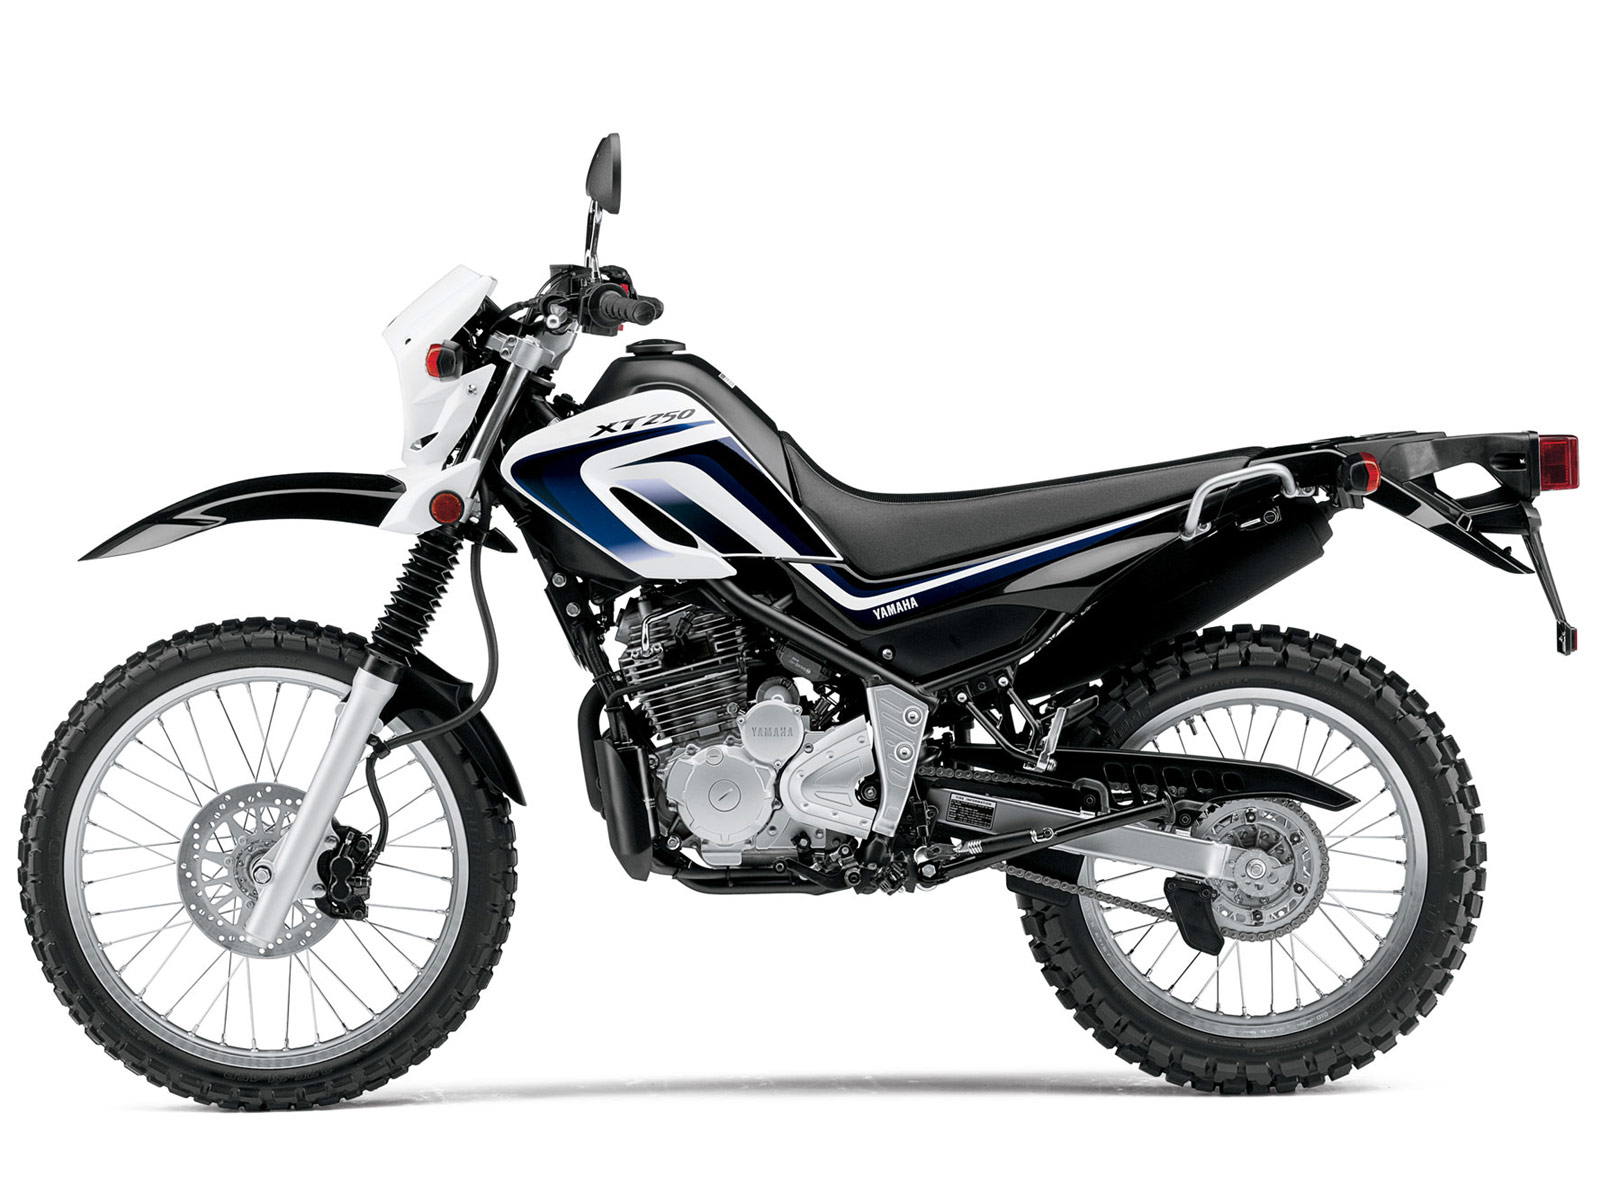 2013 yamaha xt250 review photos specifications insurance